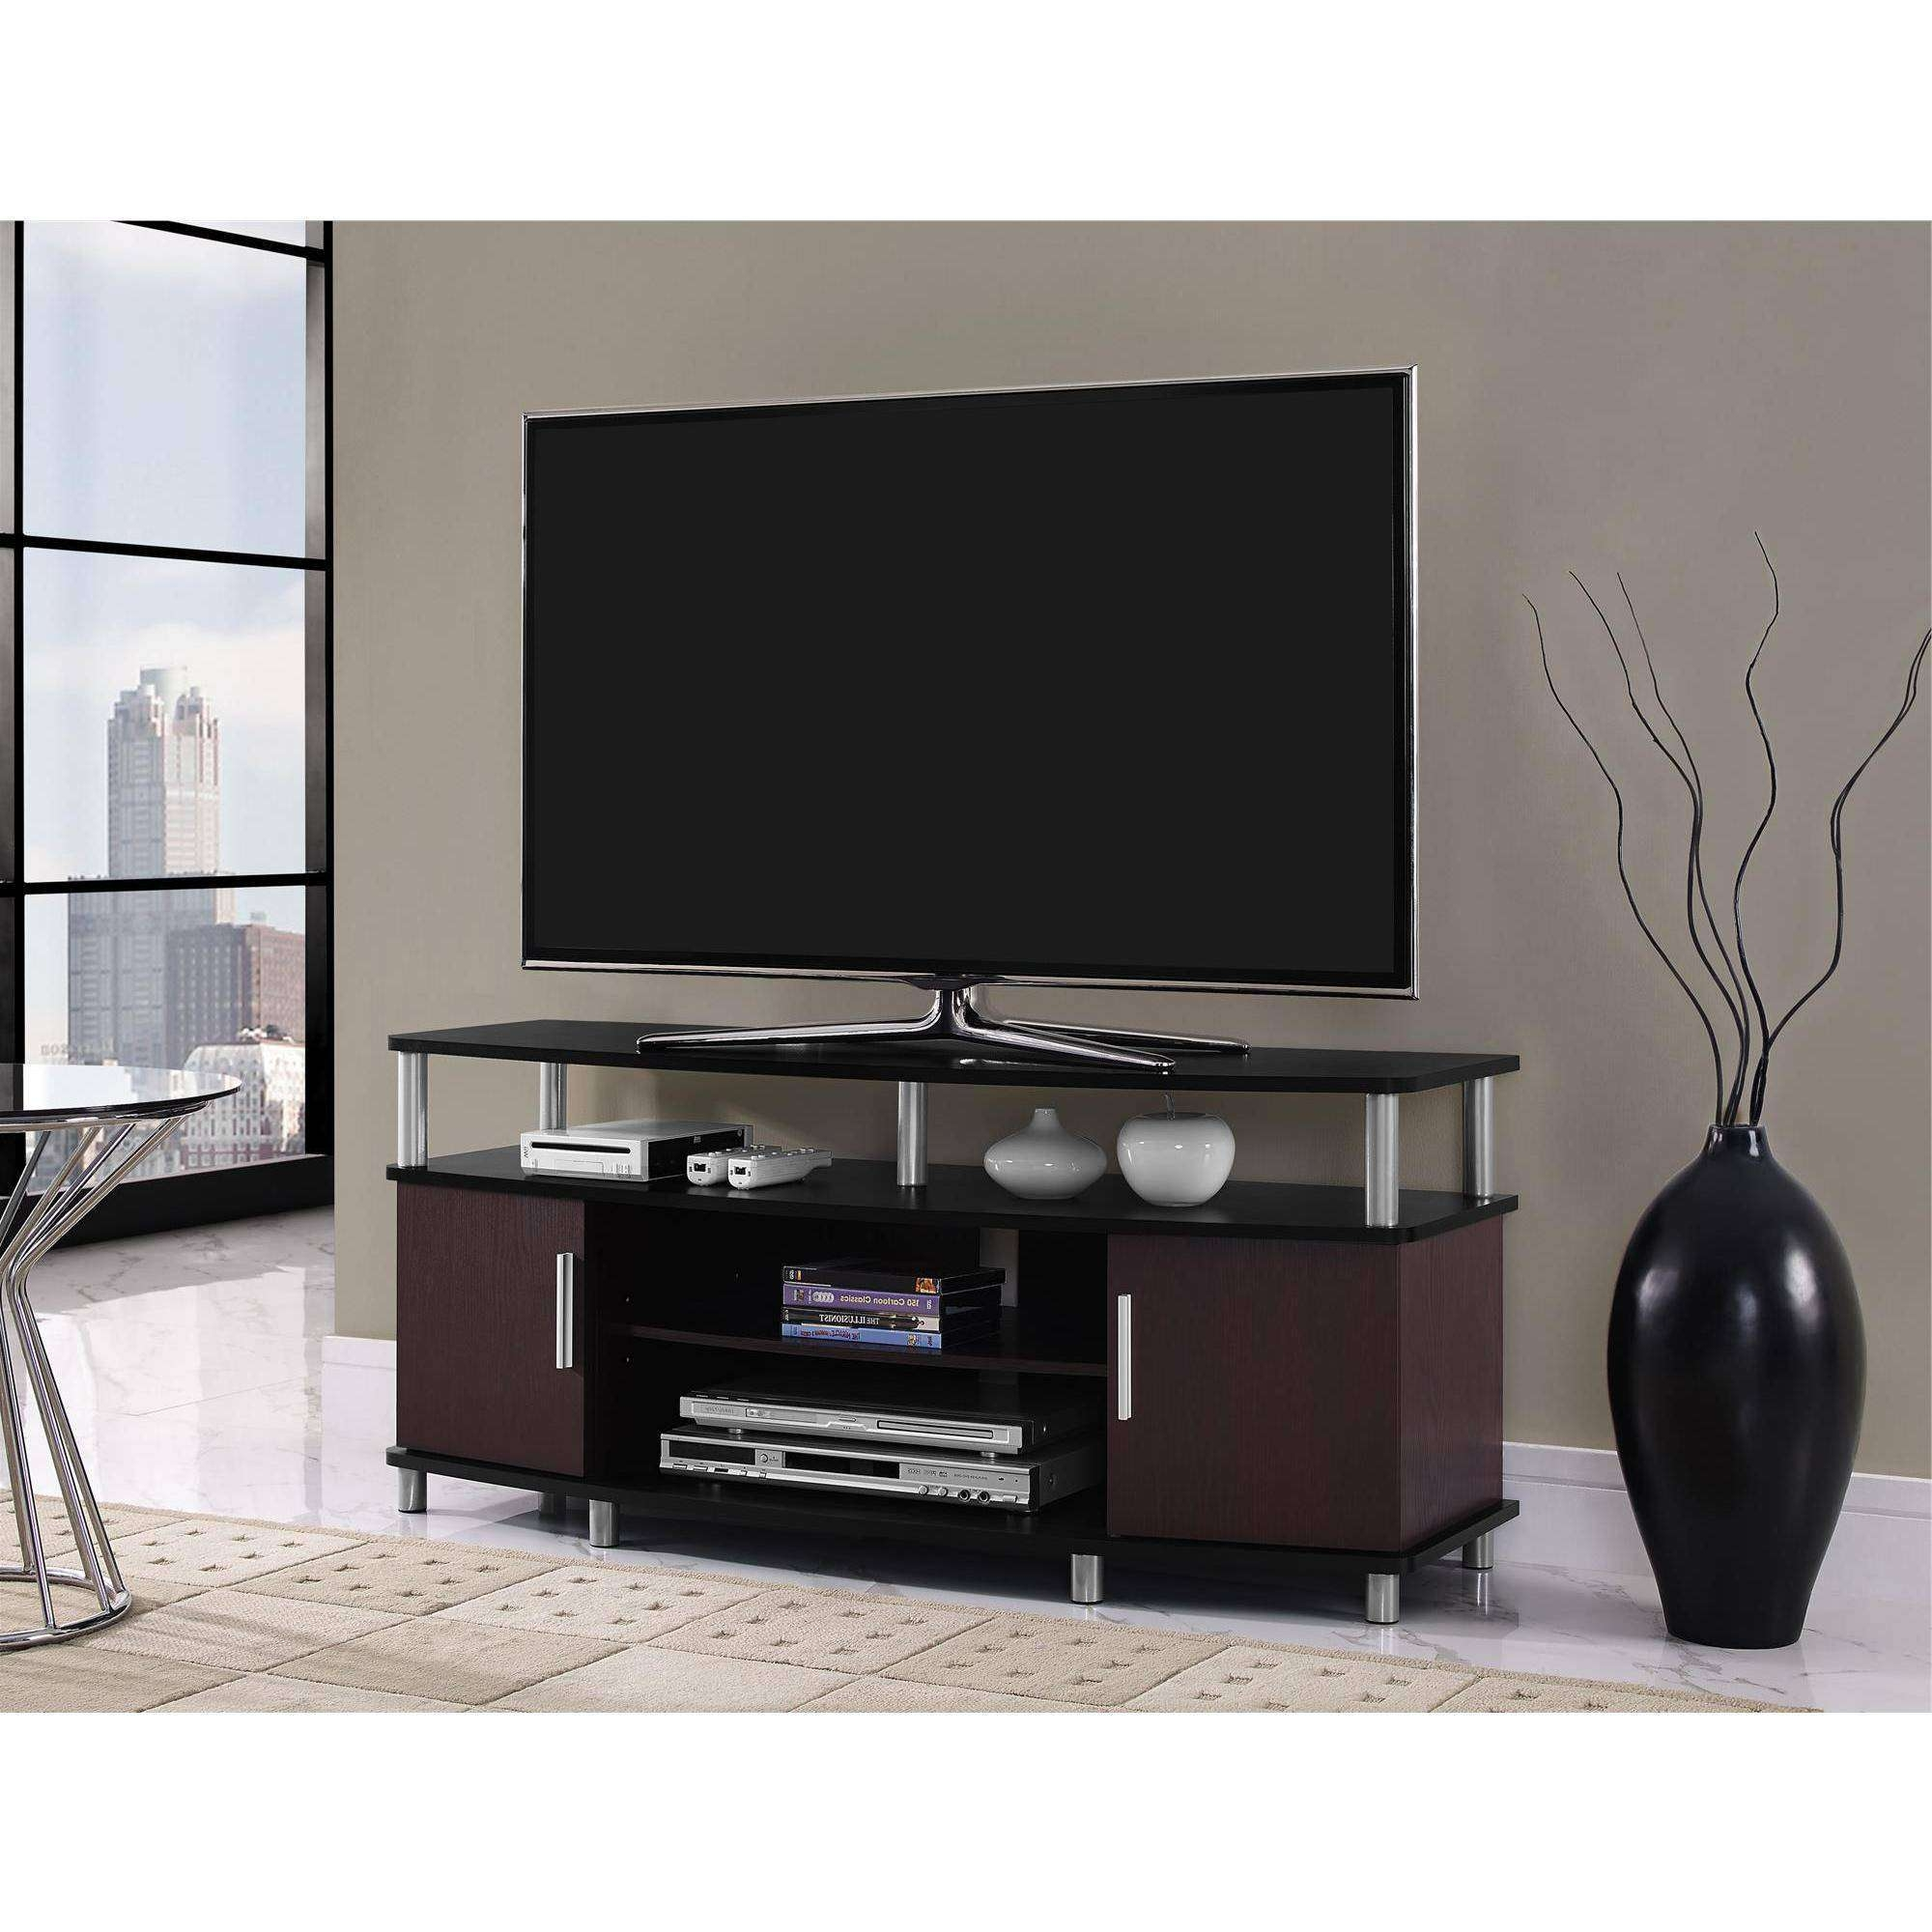 Tv Stands & Entertainment Centers – Walmart For Storage Tv Stands (View 5 of 15)